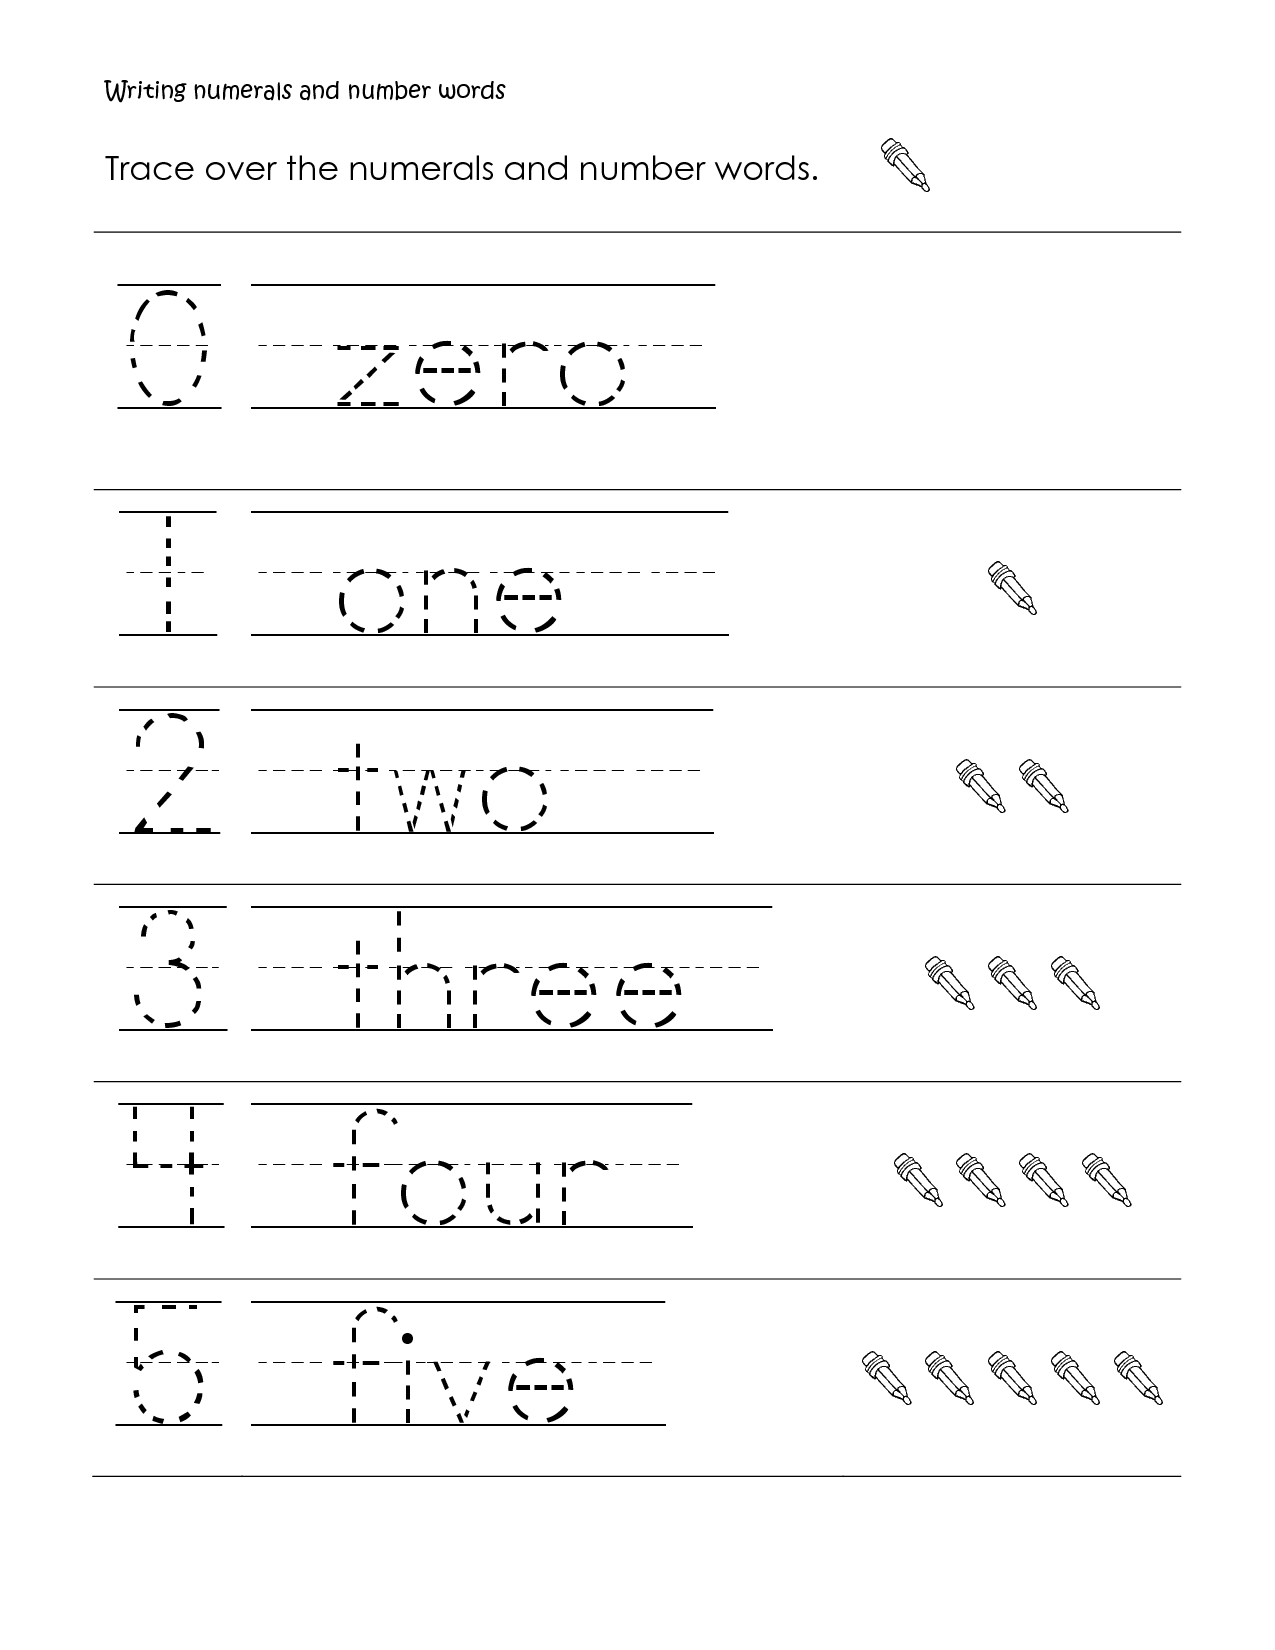 Worksheets Handwriting Worksheets Name writing numbers worksheets printable 2 pinterest 2